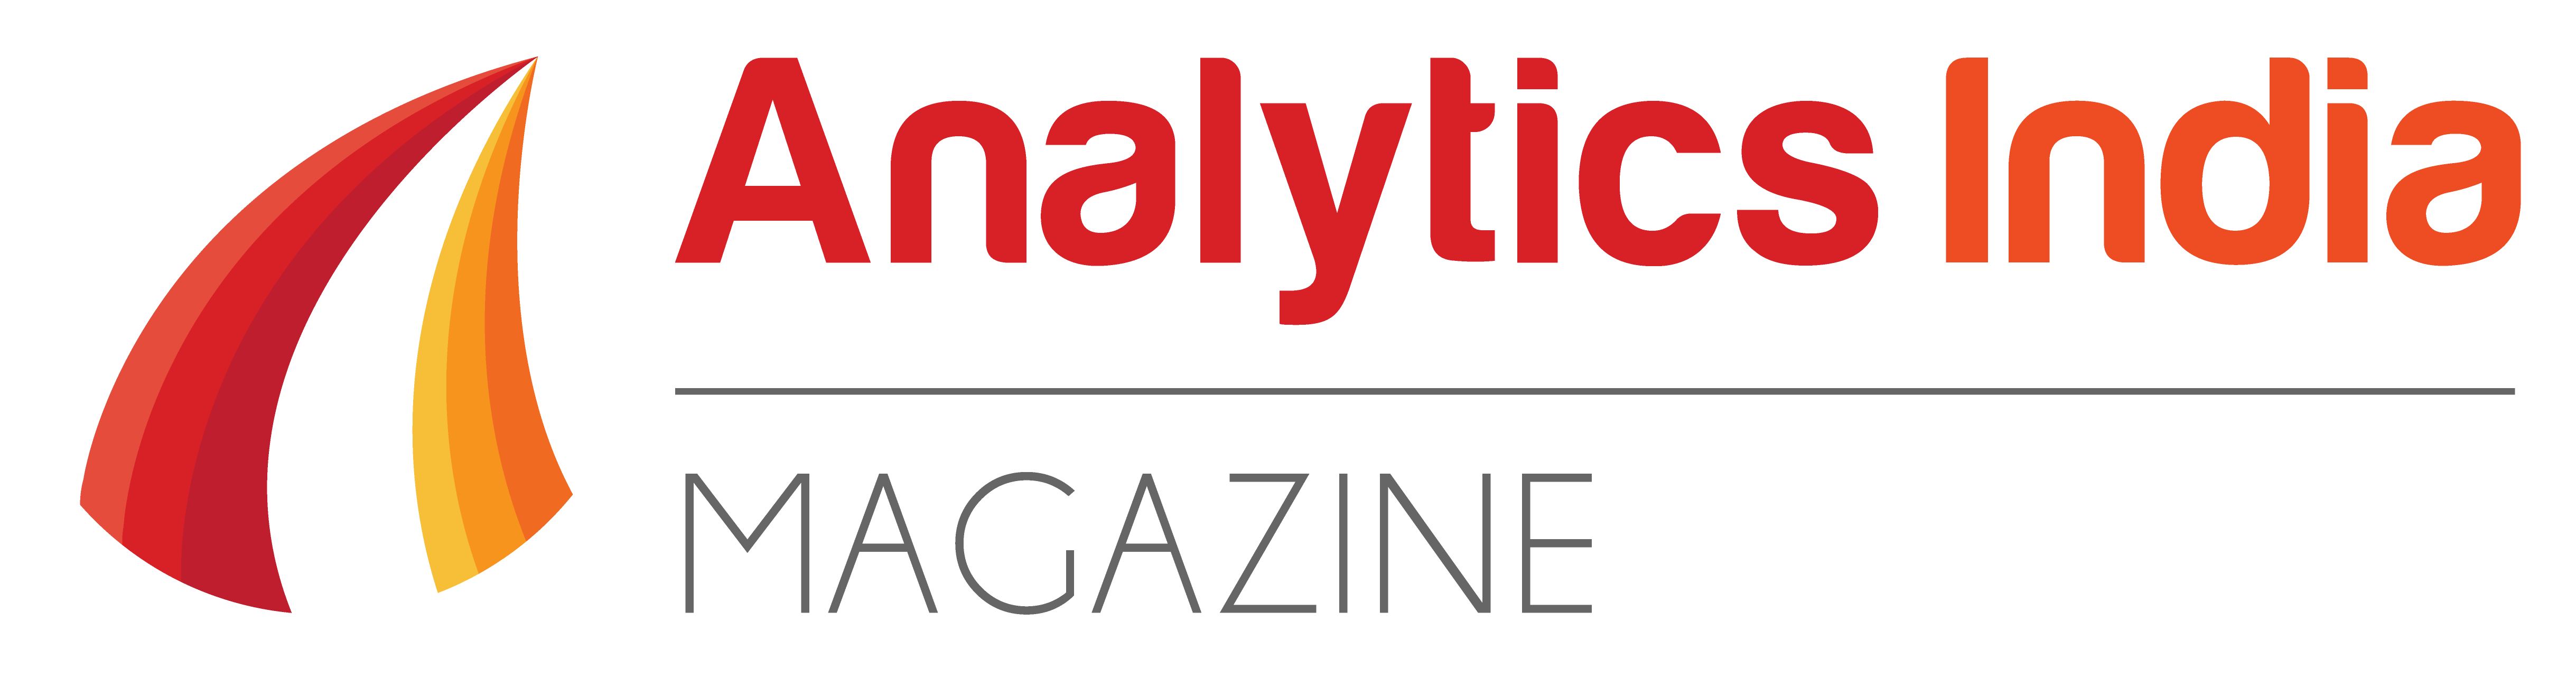 Industry View: What Are The Popular Tools And Techniques Used By Analytics Practitioners